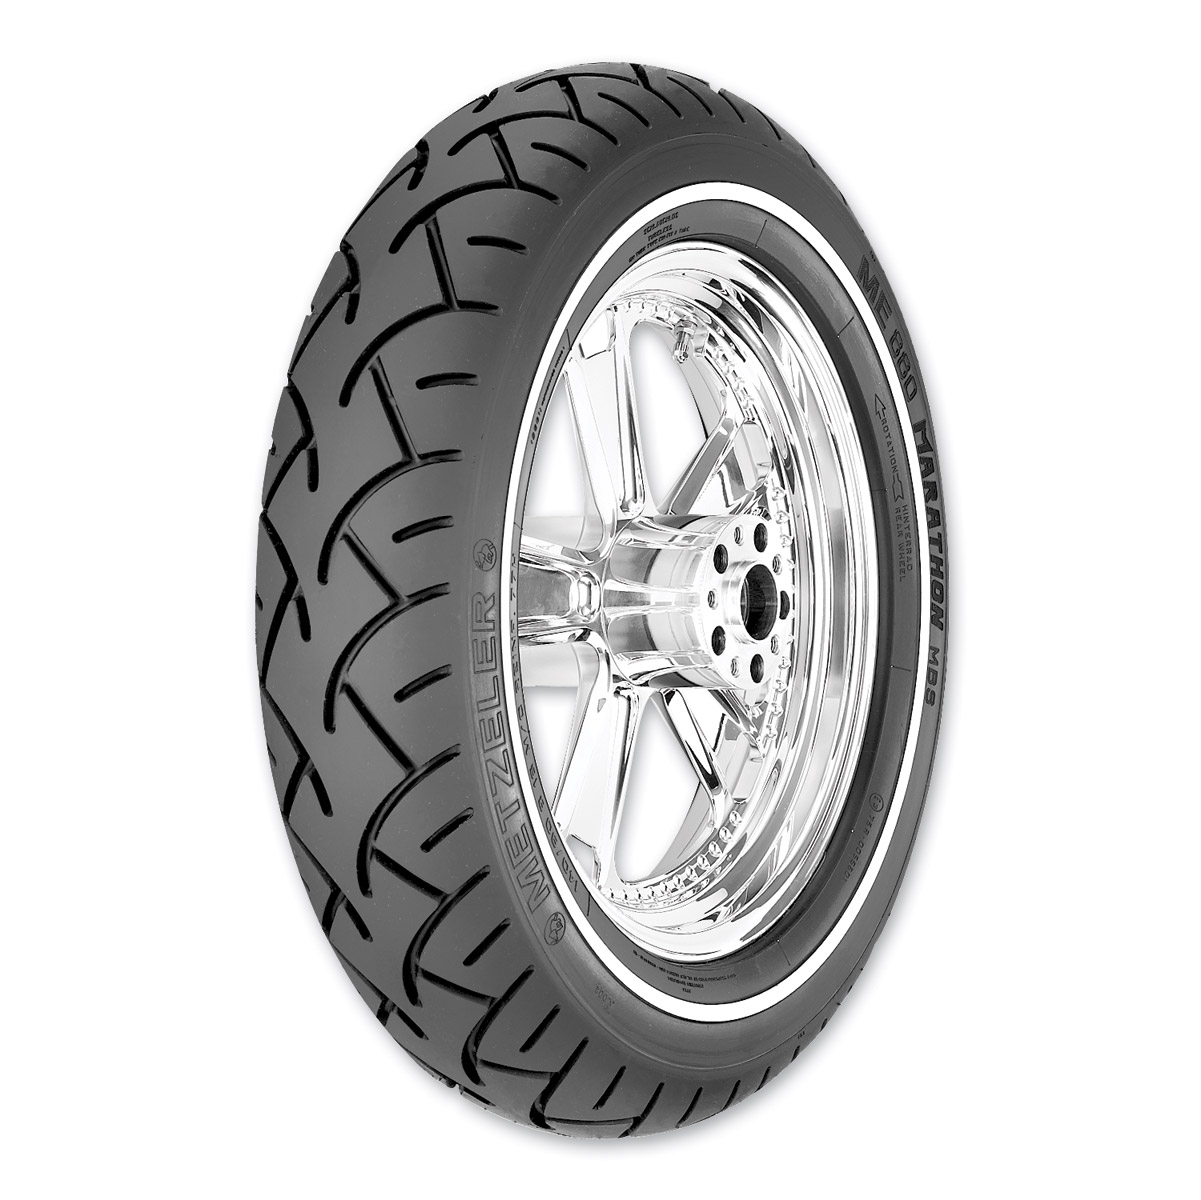 Metzeler ME880 Marathon 140/90-16 Narrow Whitewall Rear Tire